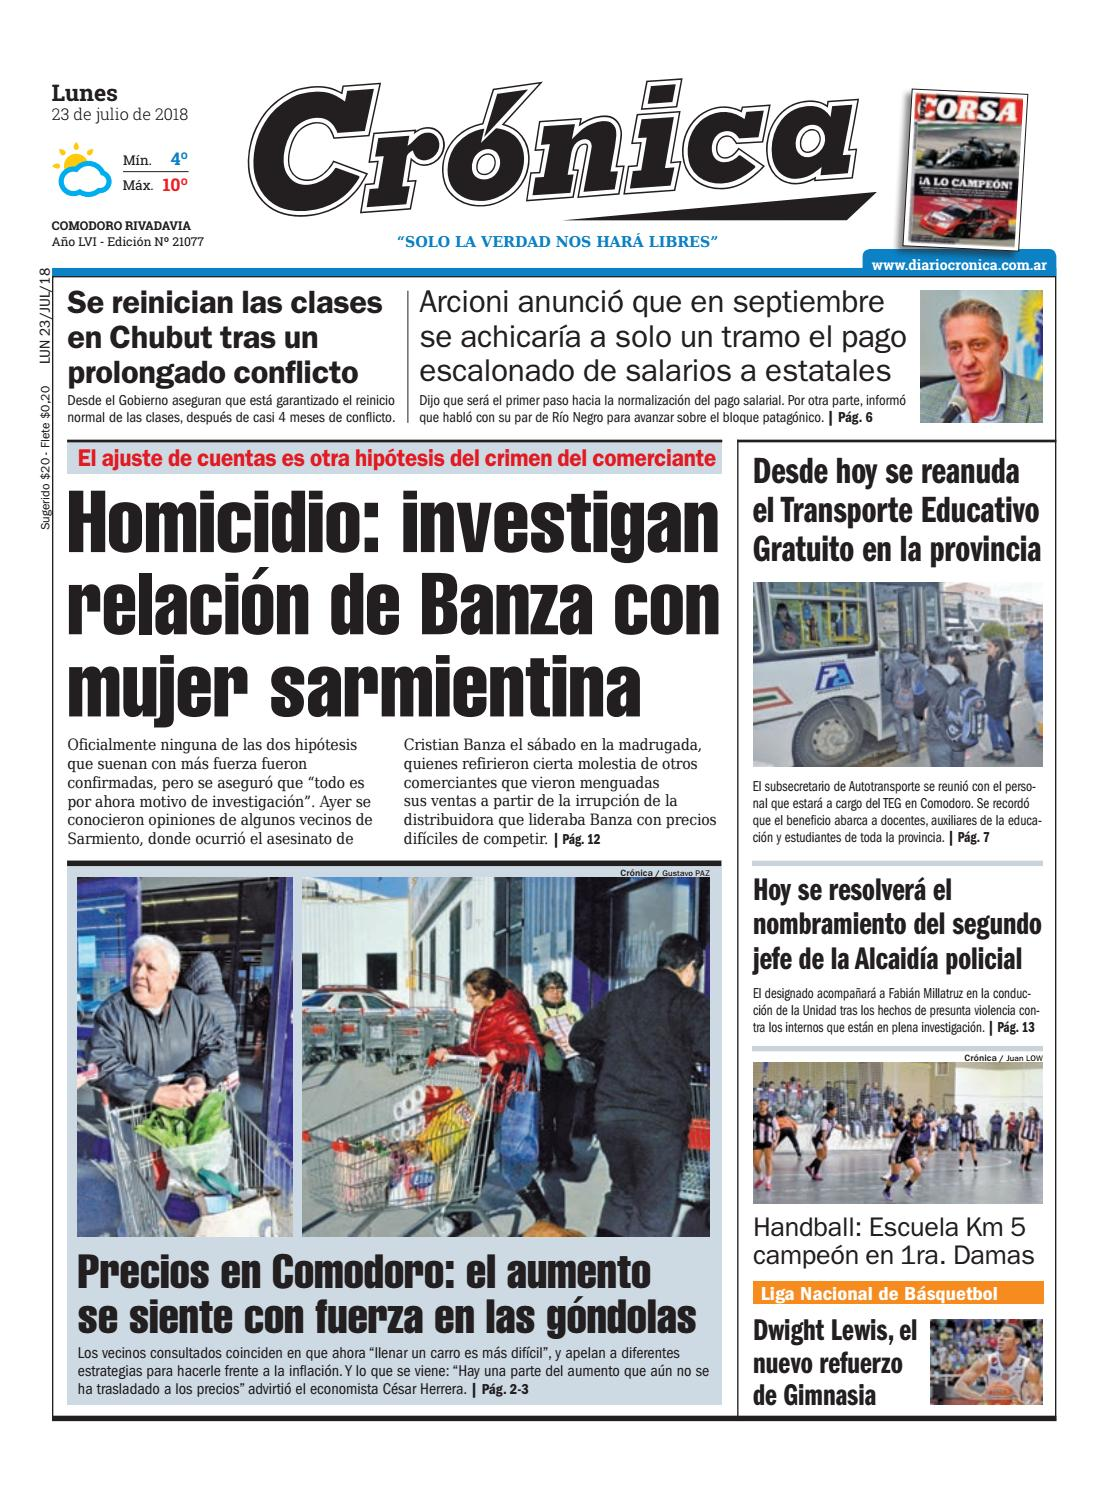 Diario cronica 23 07 2018 by Diario Crónica - issuu